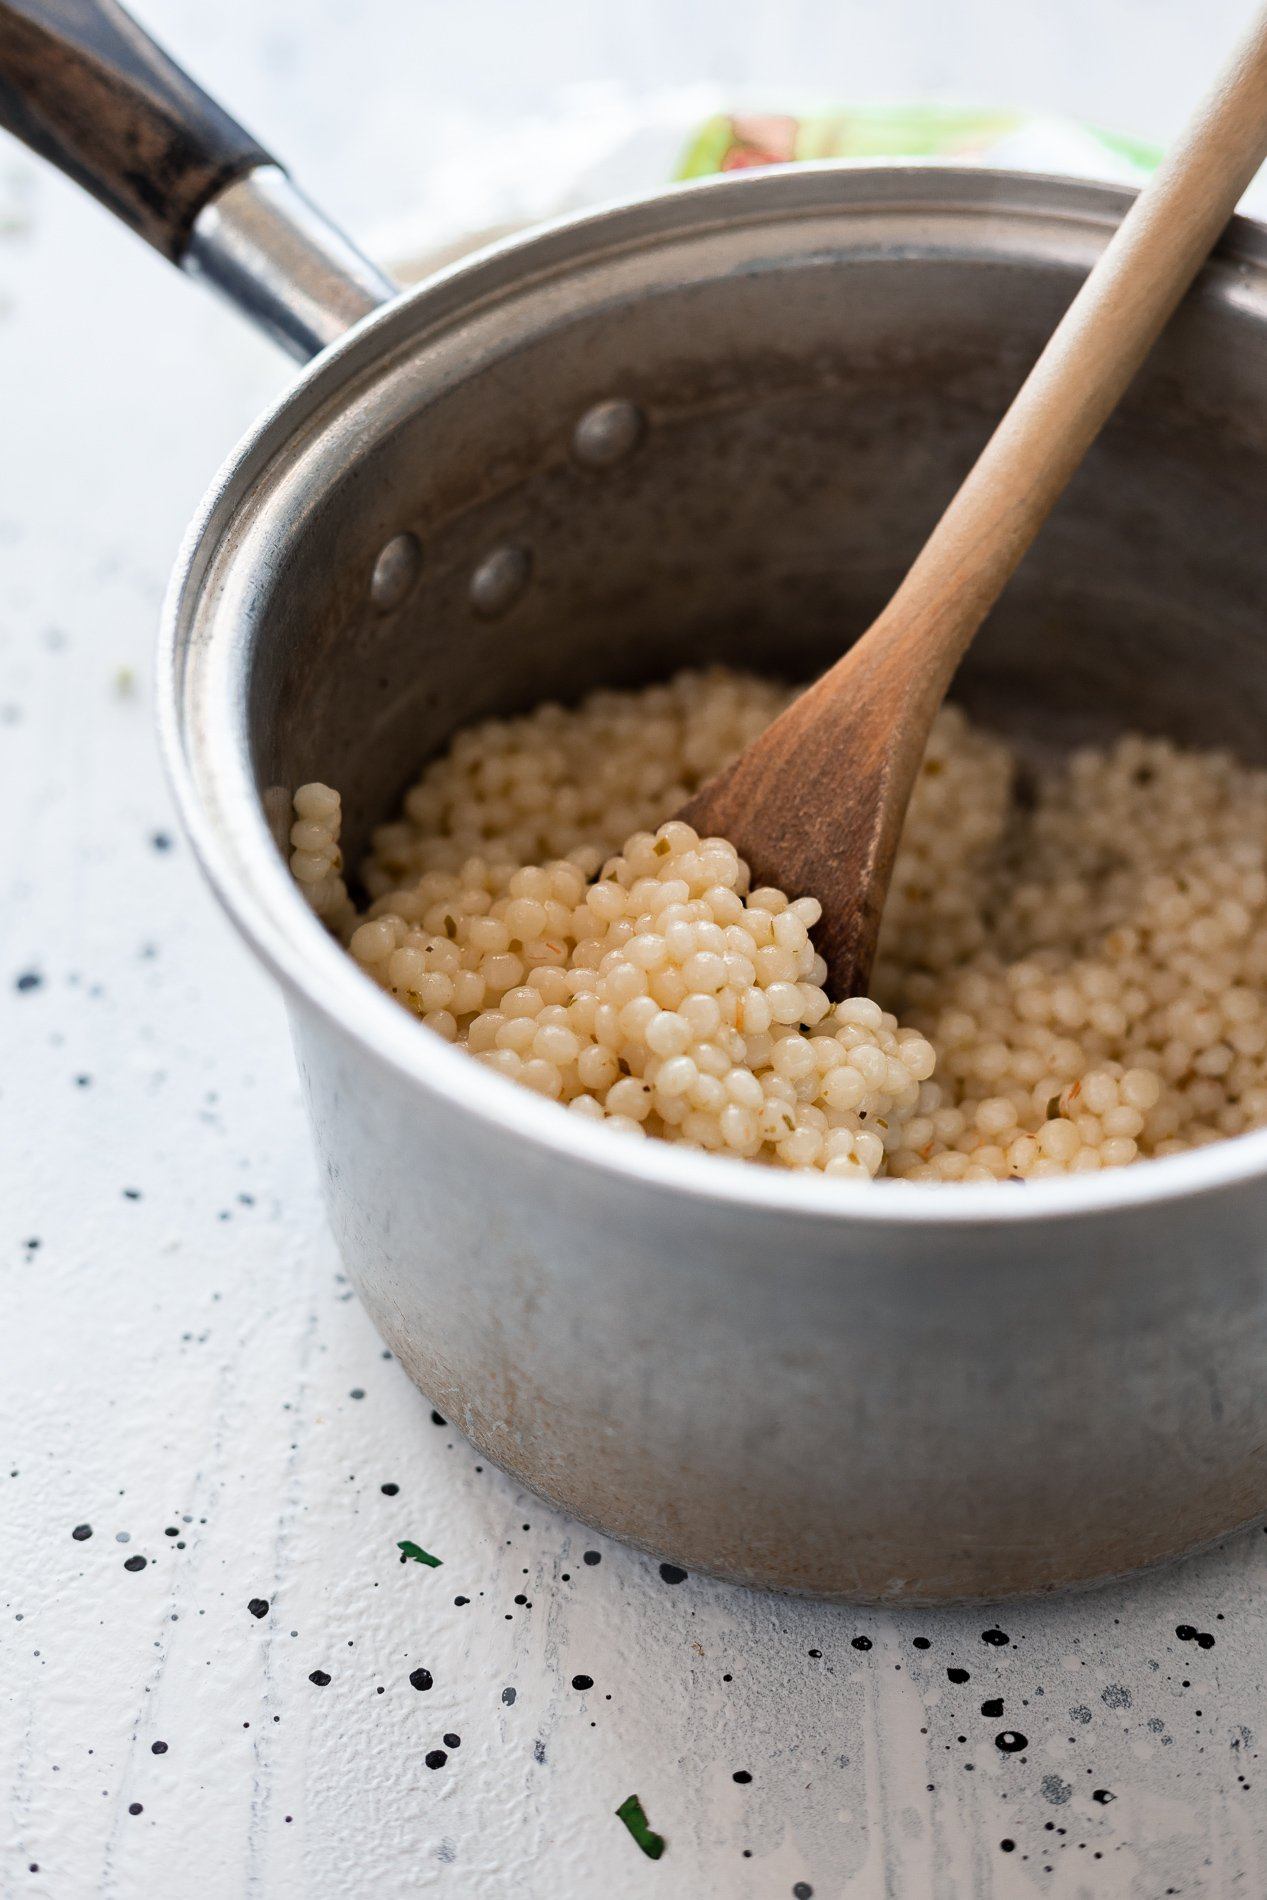 side view of a pot of pearled couscous with a wooden spoon inside it